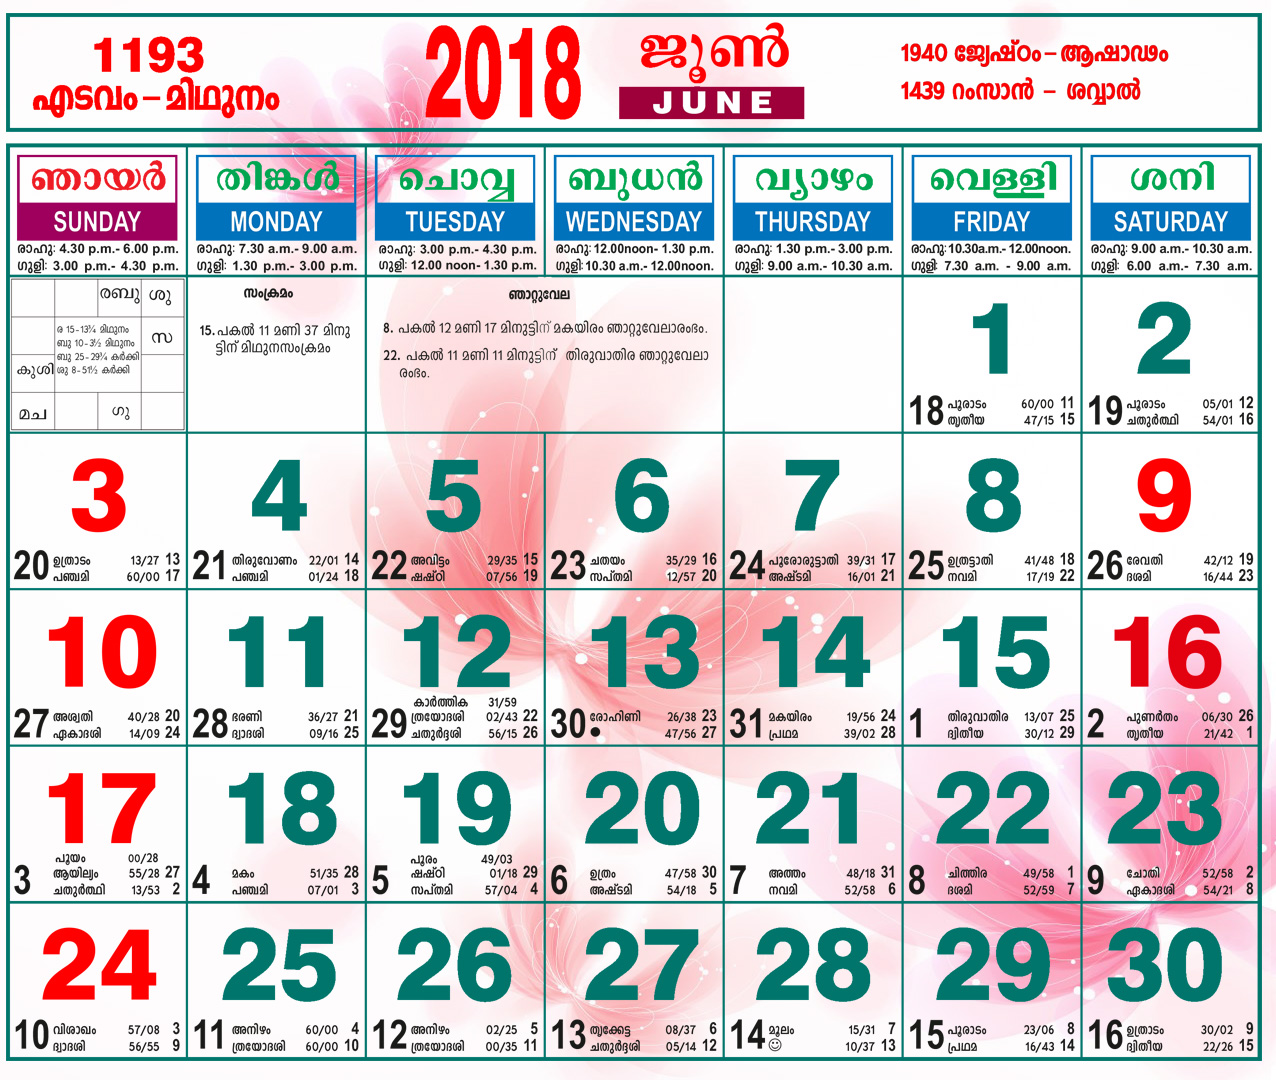 June 2018 Malayalam Calendar With Holidays and Festivals